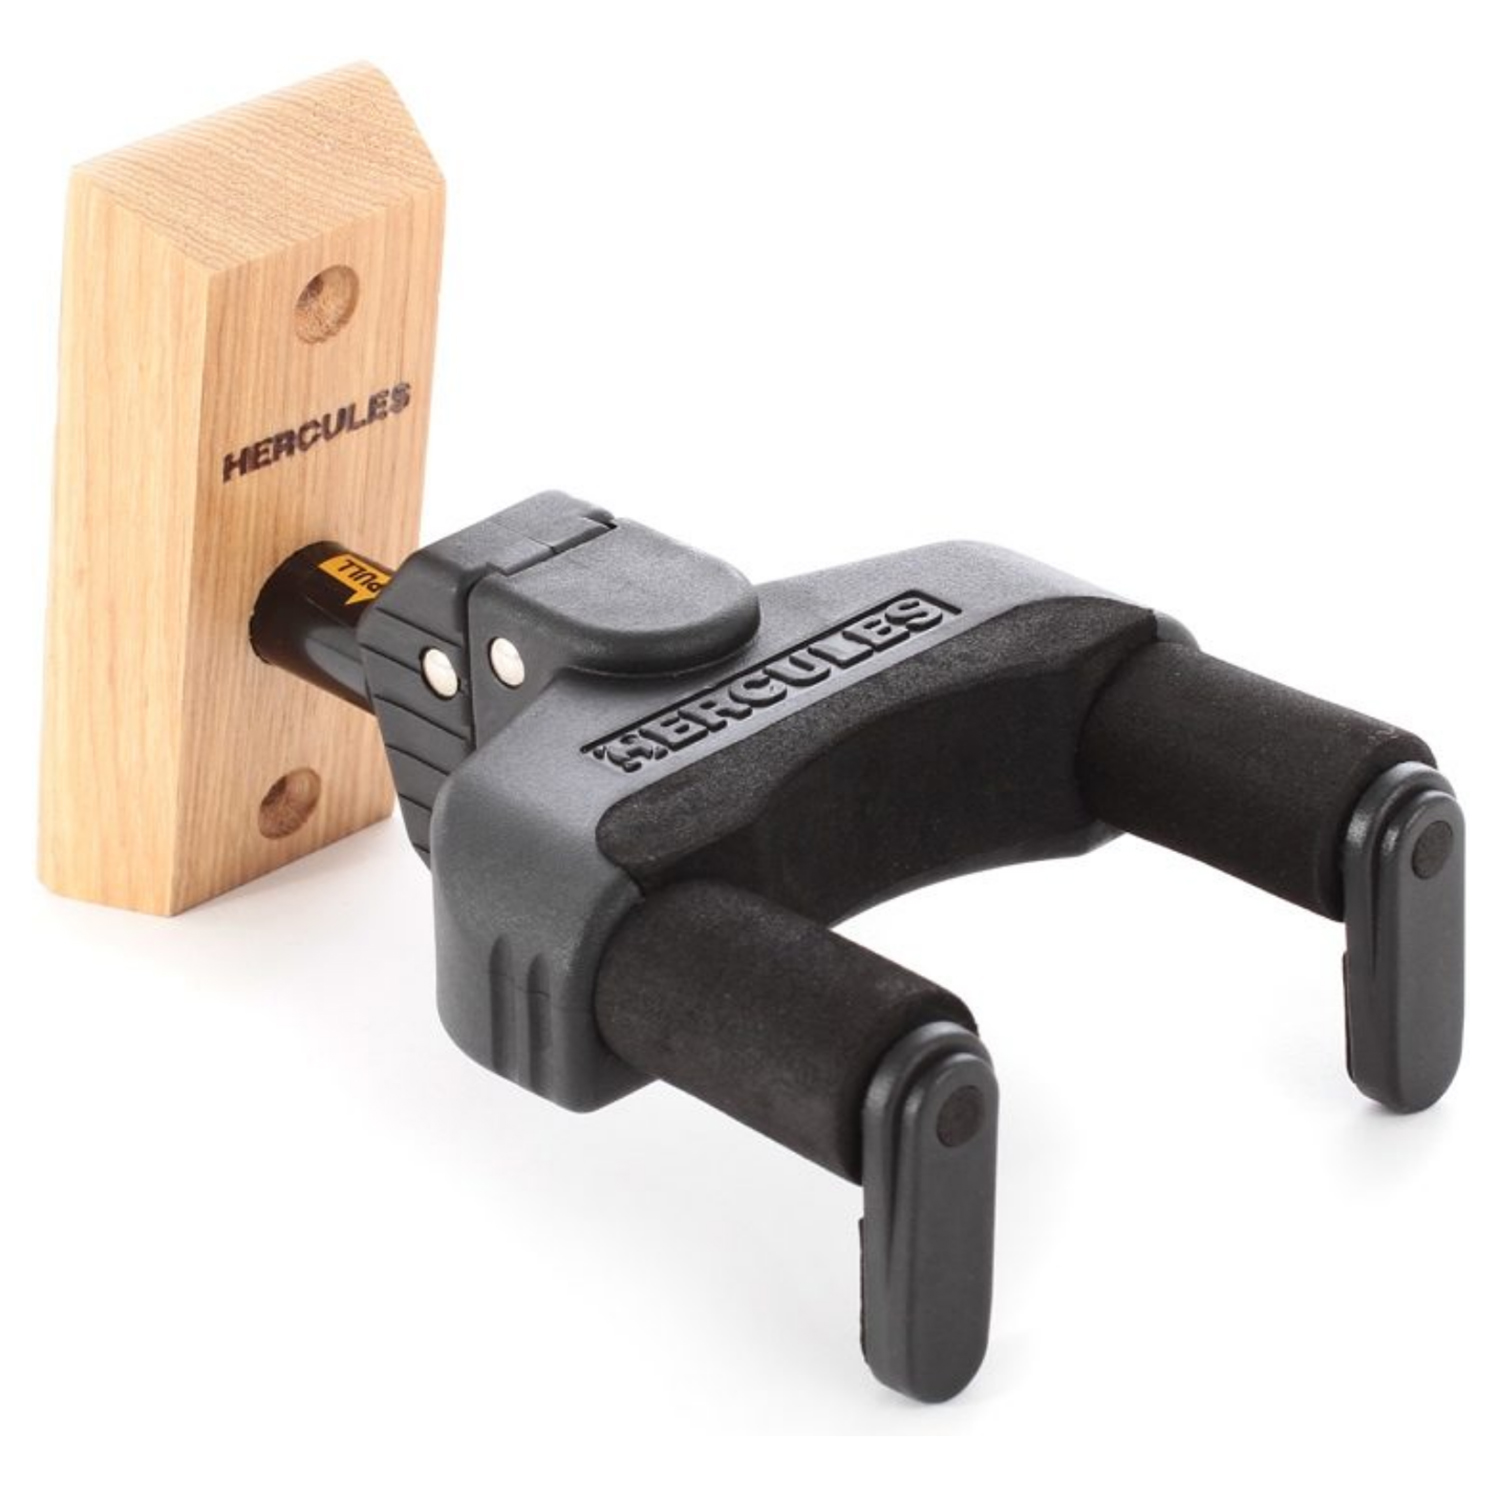 Auto Grip guitar hanger for wall mounting w/ wood base, short arm